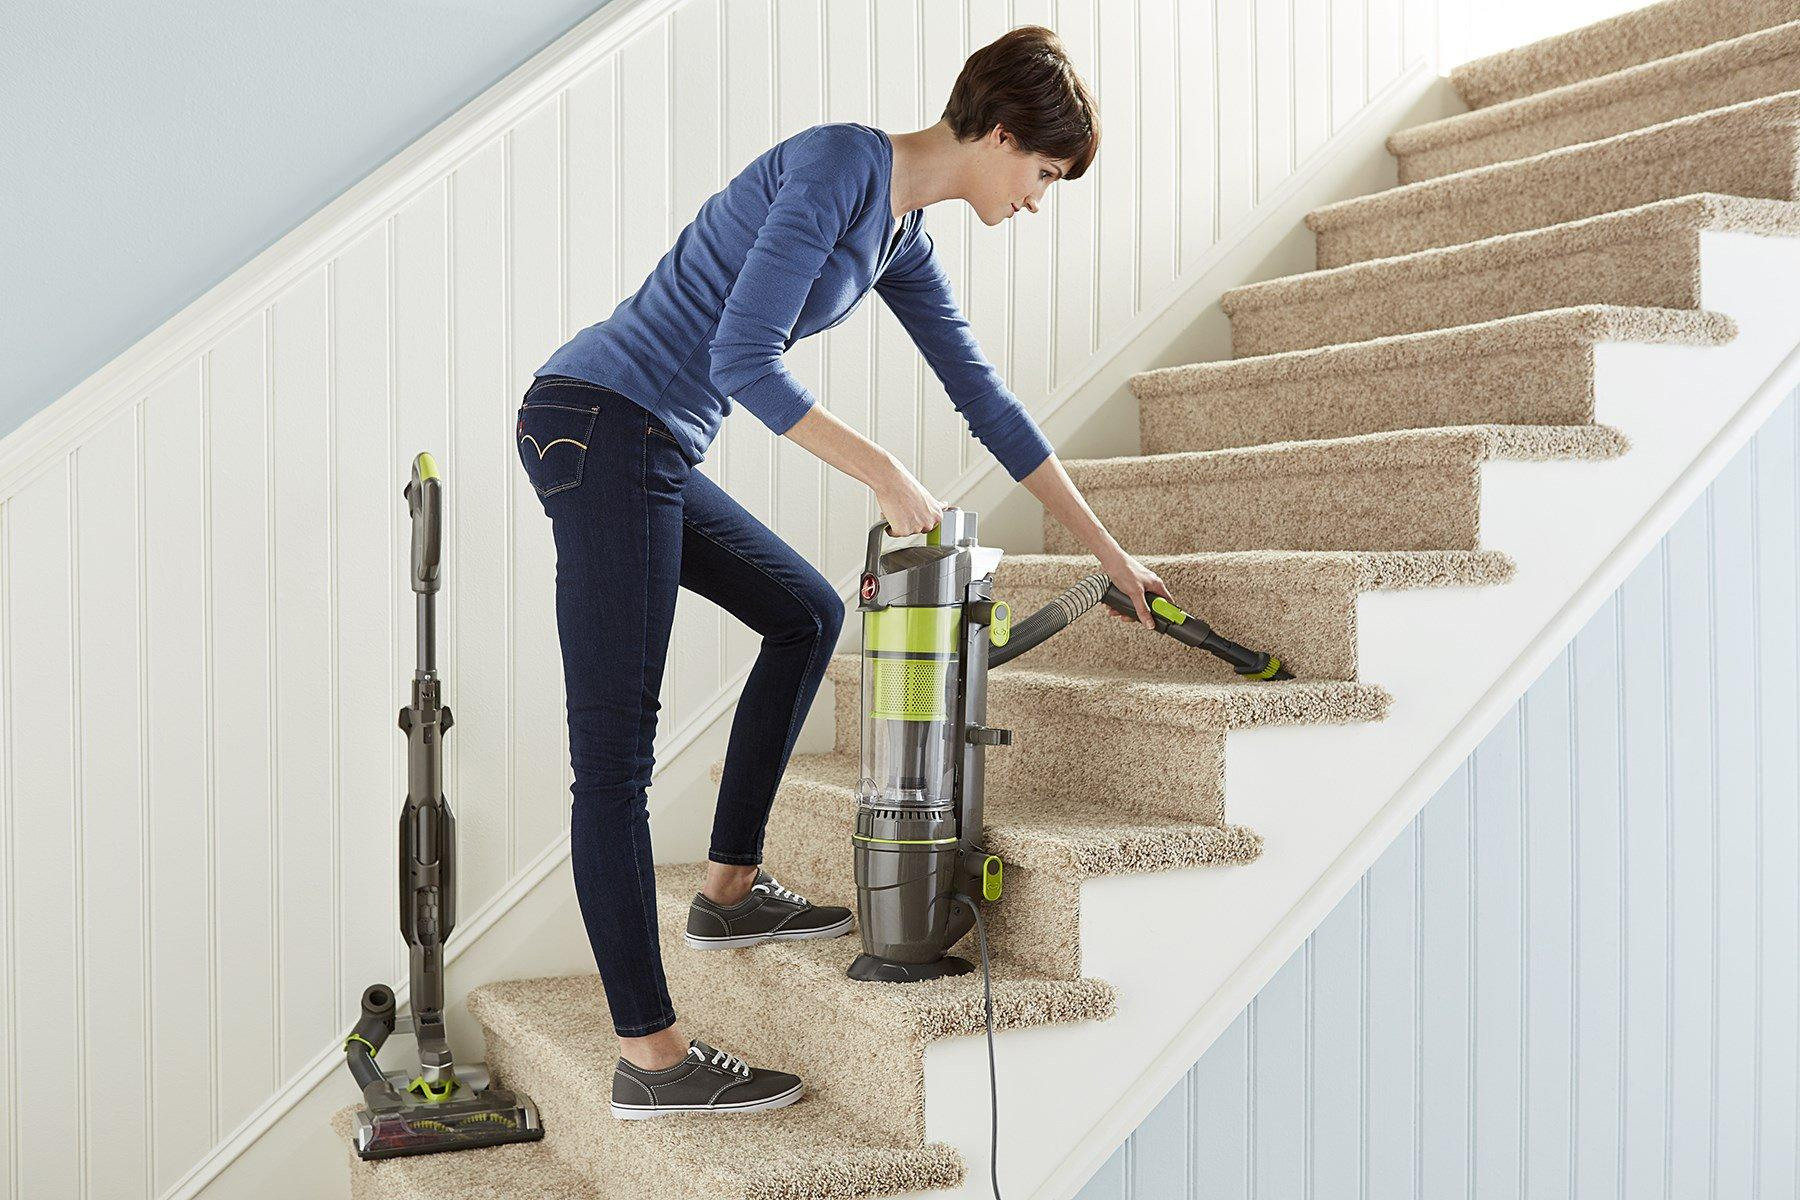 Hoover Air Lift Light Bagless Upright Vacuum Cleaner